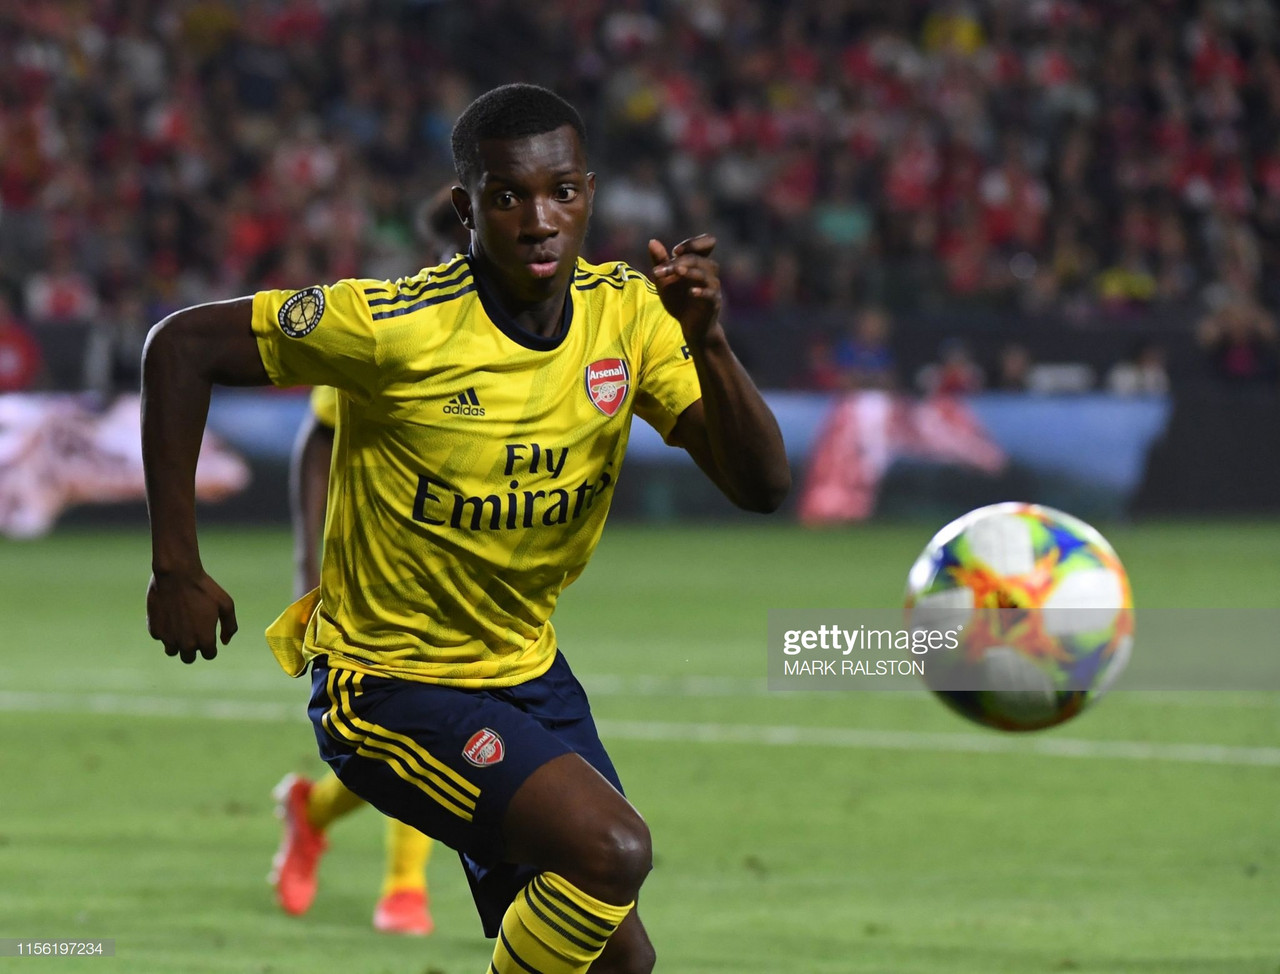 Opinion: Is Eddie Nketiah a headache for Arsenal?